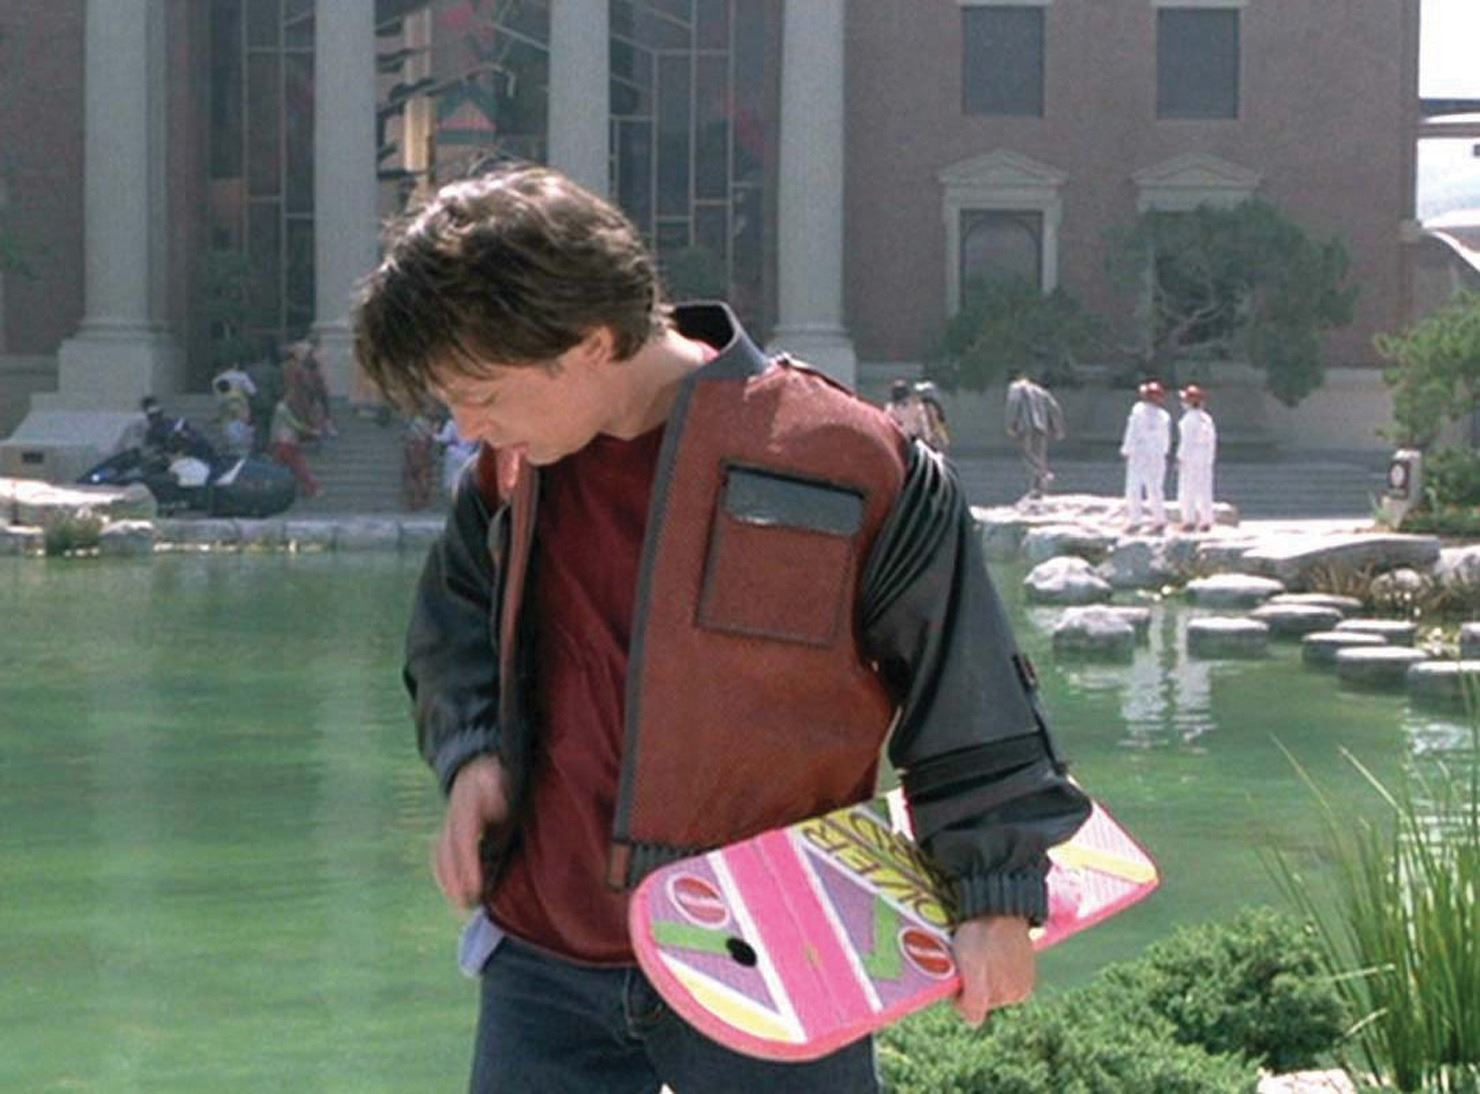 michael j fox marty mcfly hoverboard prop from back to the future part ii. Black Bedroom Furniture Sets. Home Design Ideas